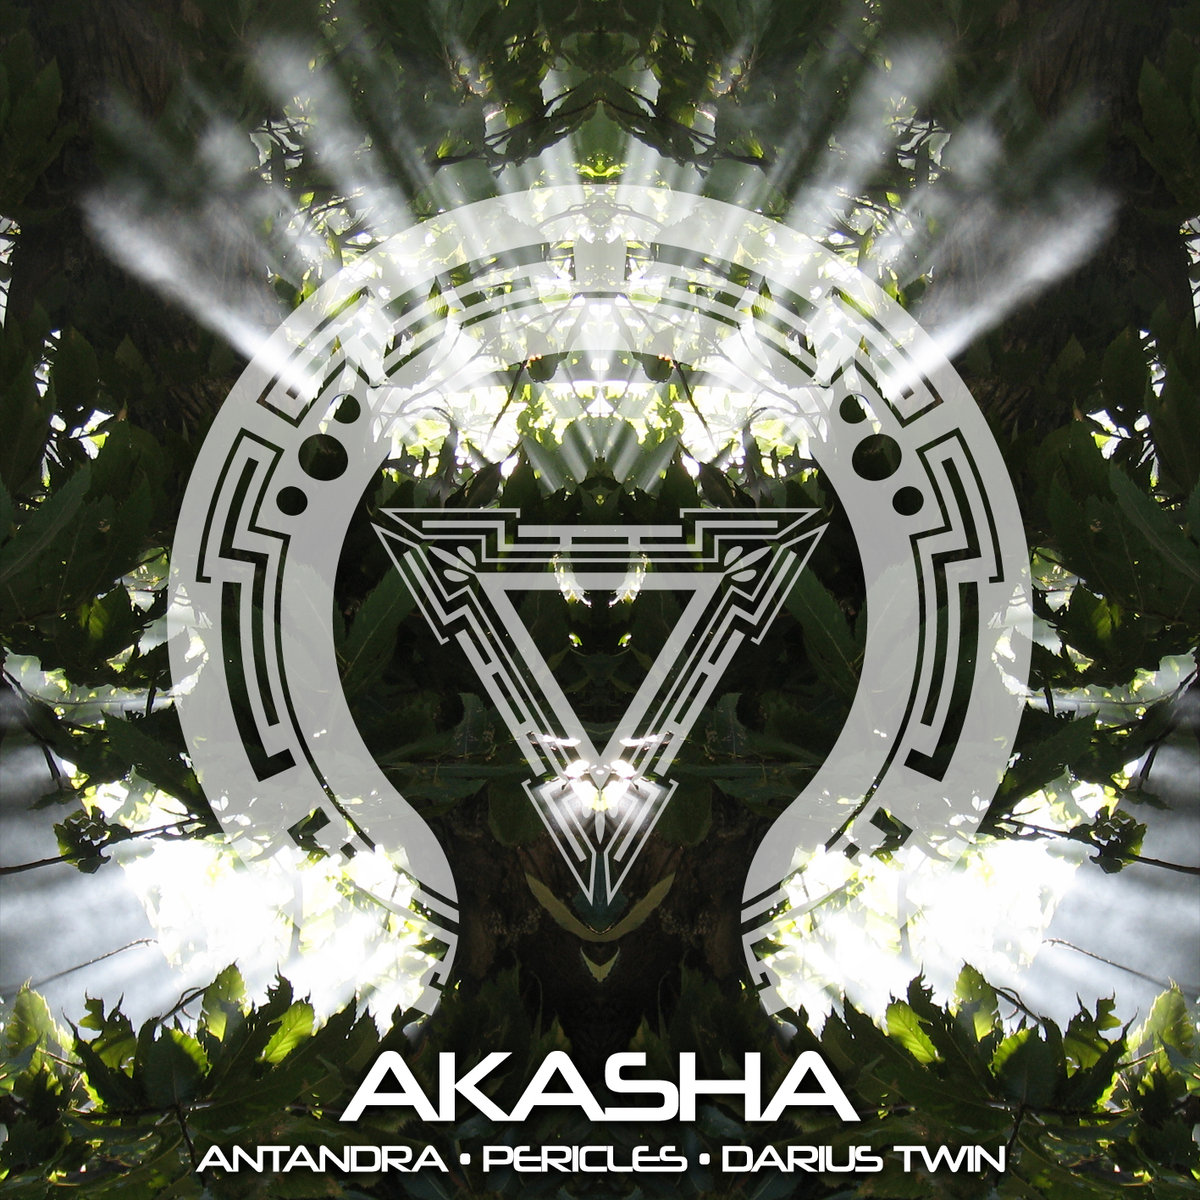 Antandra - Akasha (Original Mix) @ 'V/A - Akasha' album (ambient, bass music)